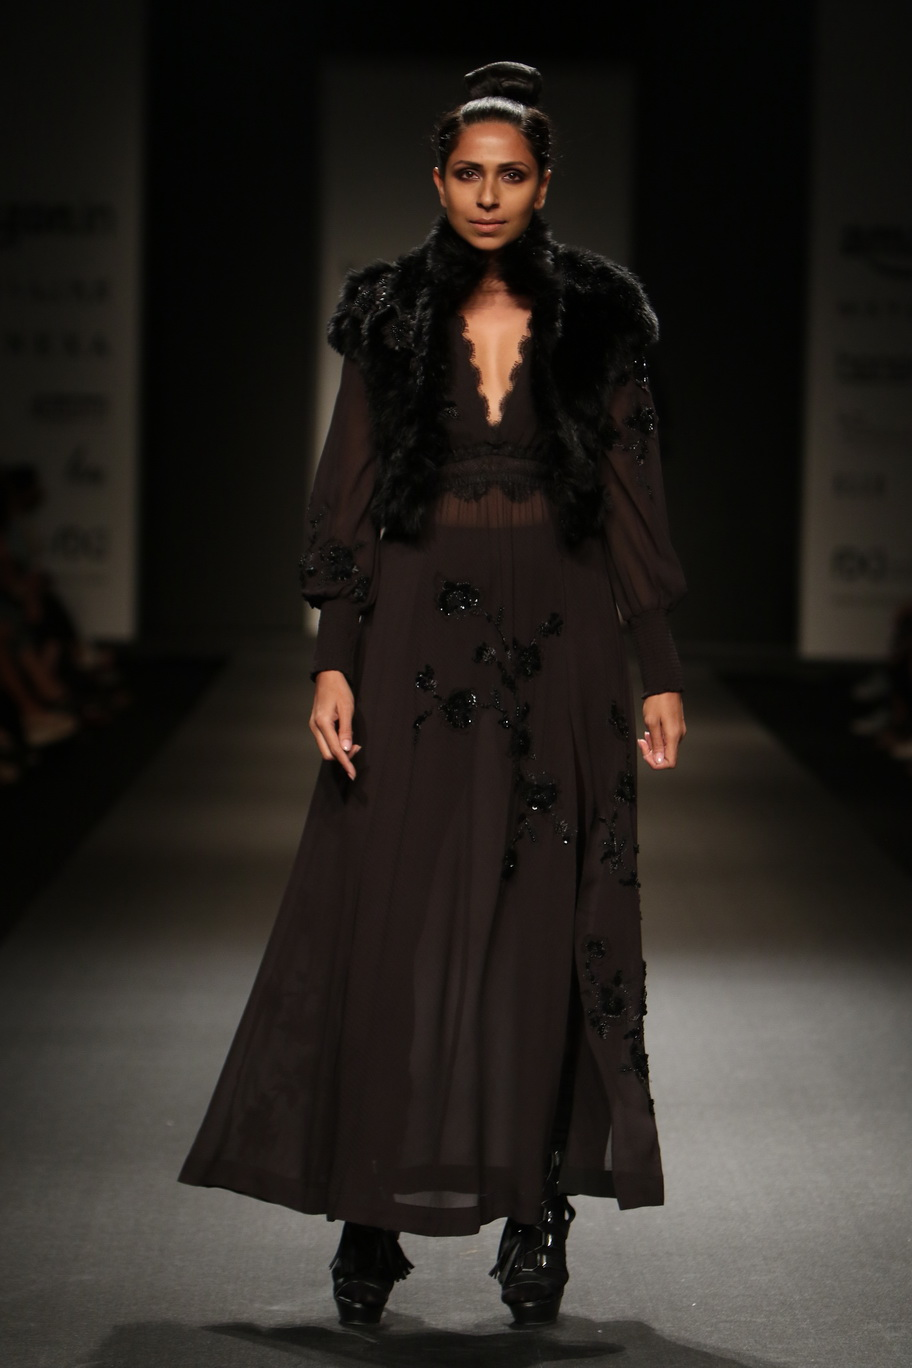 http://www.talksassy.com/wp-content/uploads/2017/03/Amazon-India-Fashion-Week-Autumn-Winter-2017-24.jpg